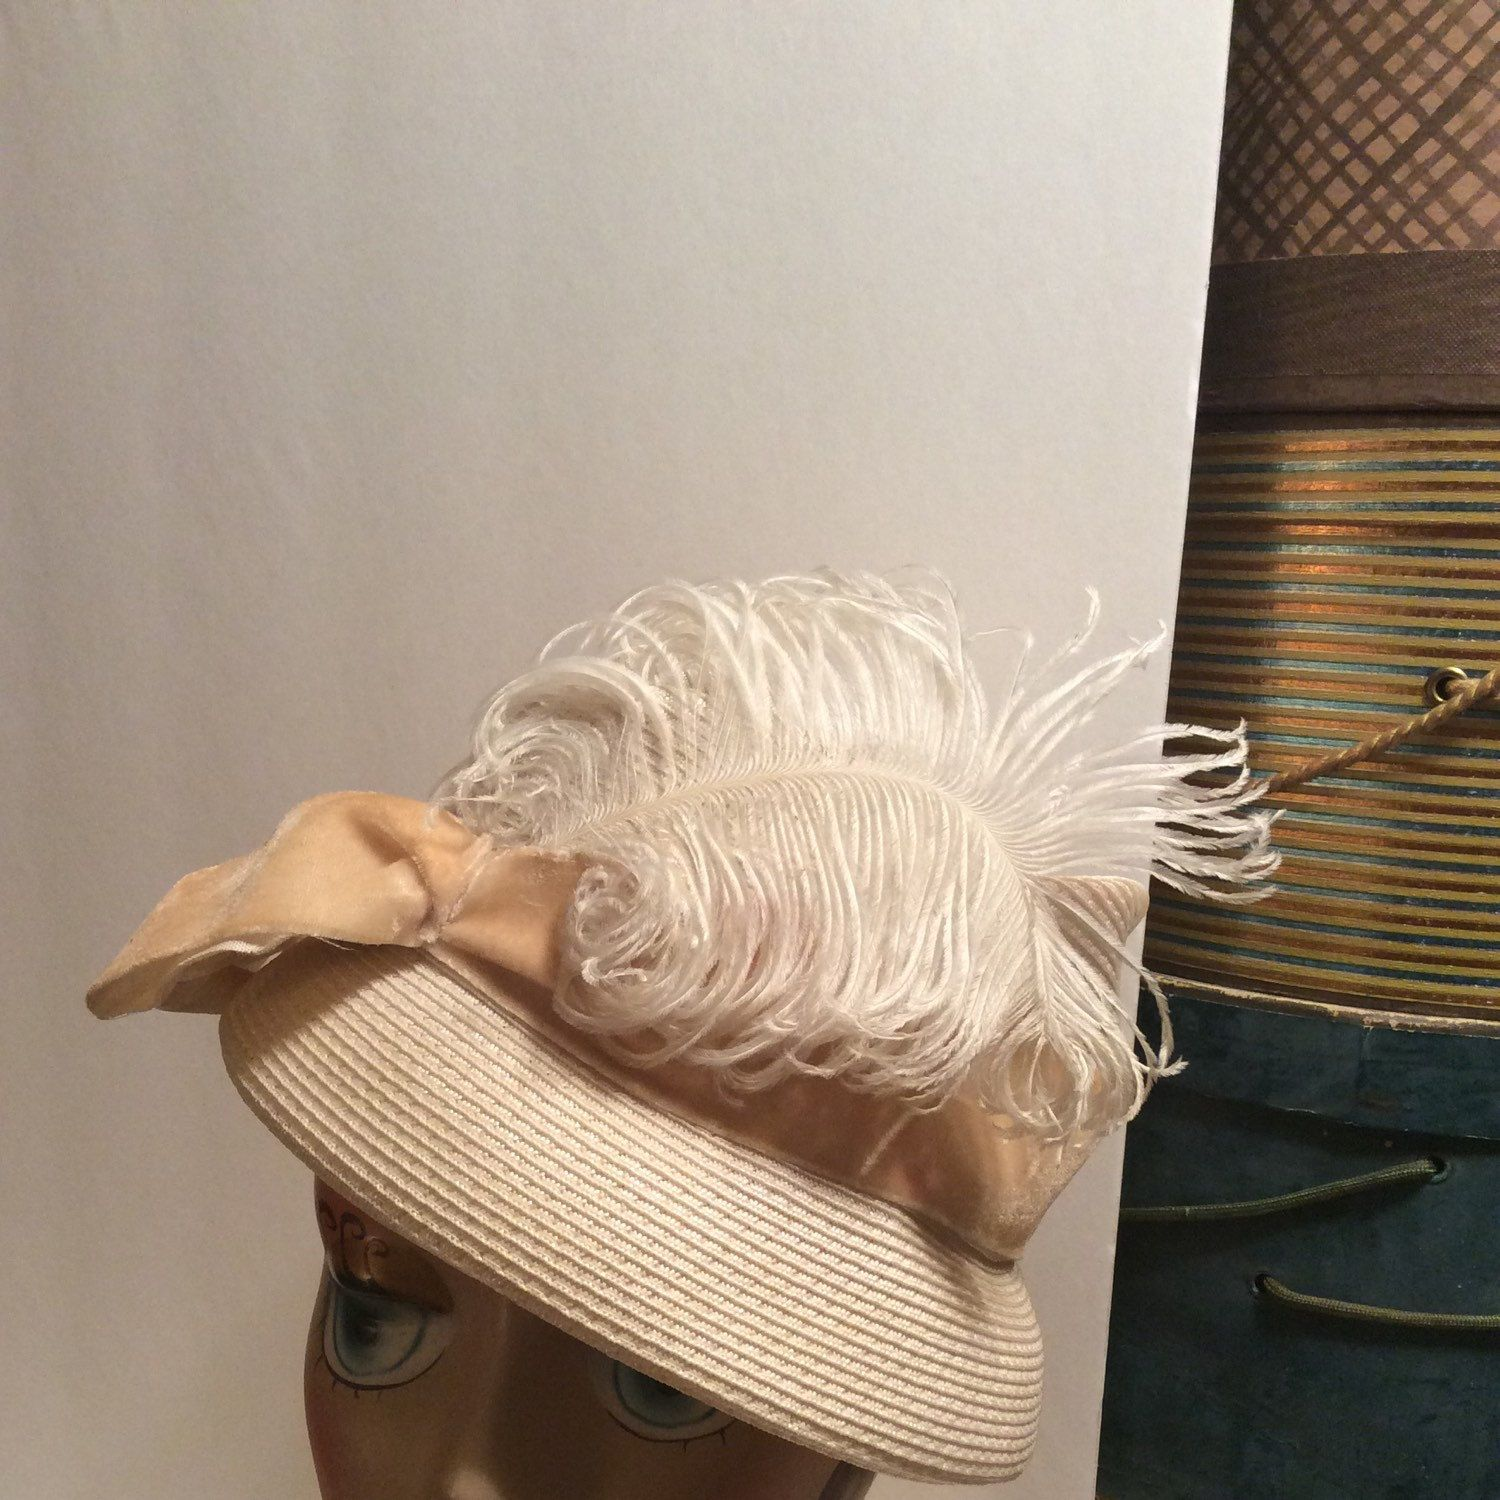 Vintage 1940s Genuine Swiss Perido Straw Hat With Feathers Etsy Hats Vintage Straw Hat Hats